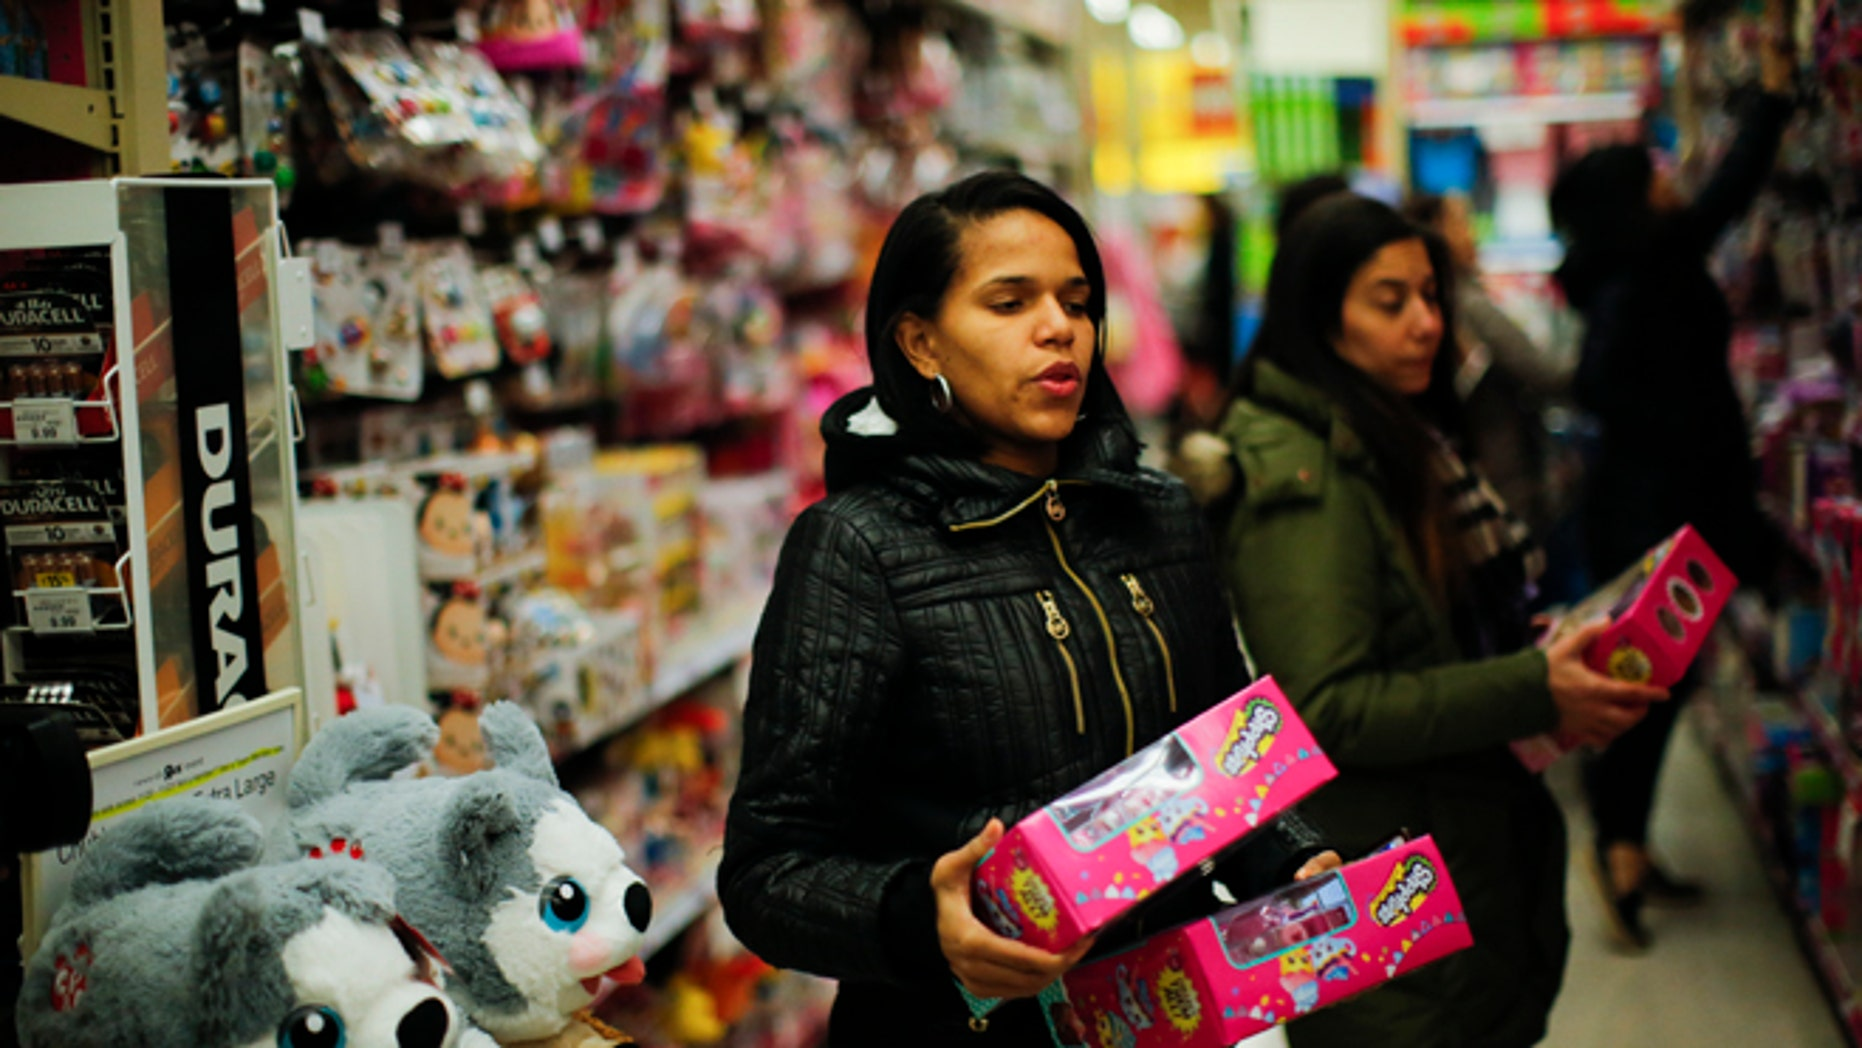 Shoppers during early Black Friday events on November 24, 2016 in Paramus, New Jersey.